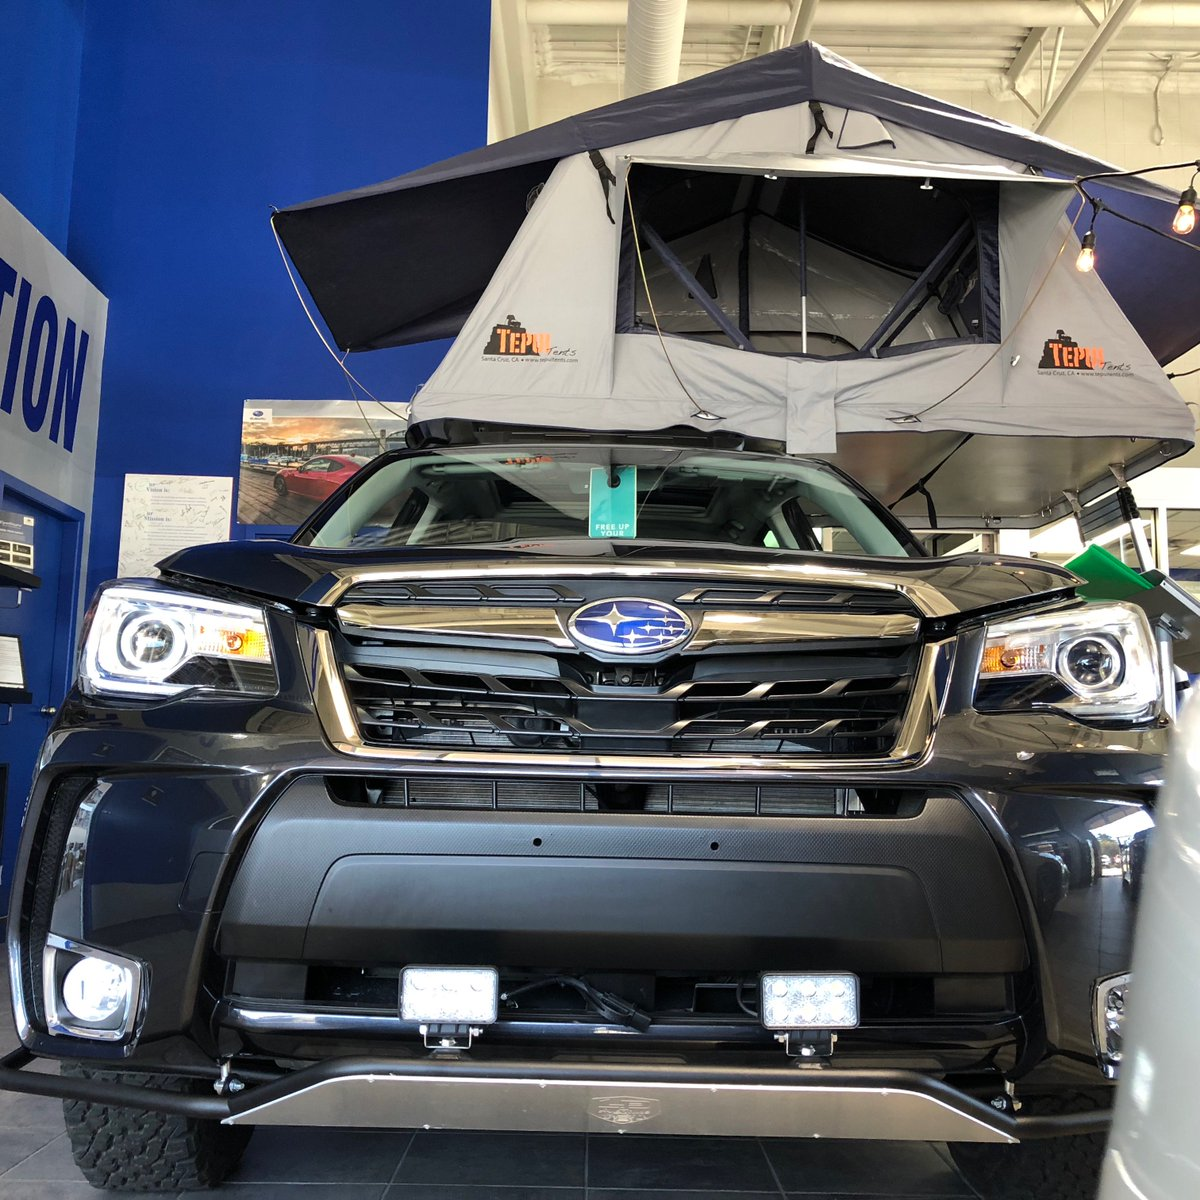 scott subaru on twitter this lifted forester xt is ready for the